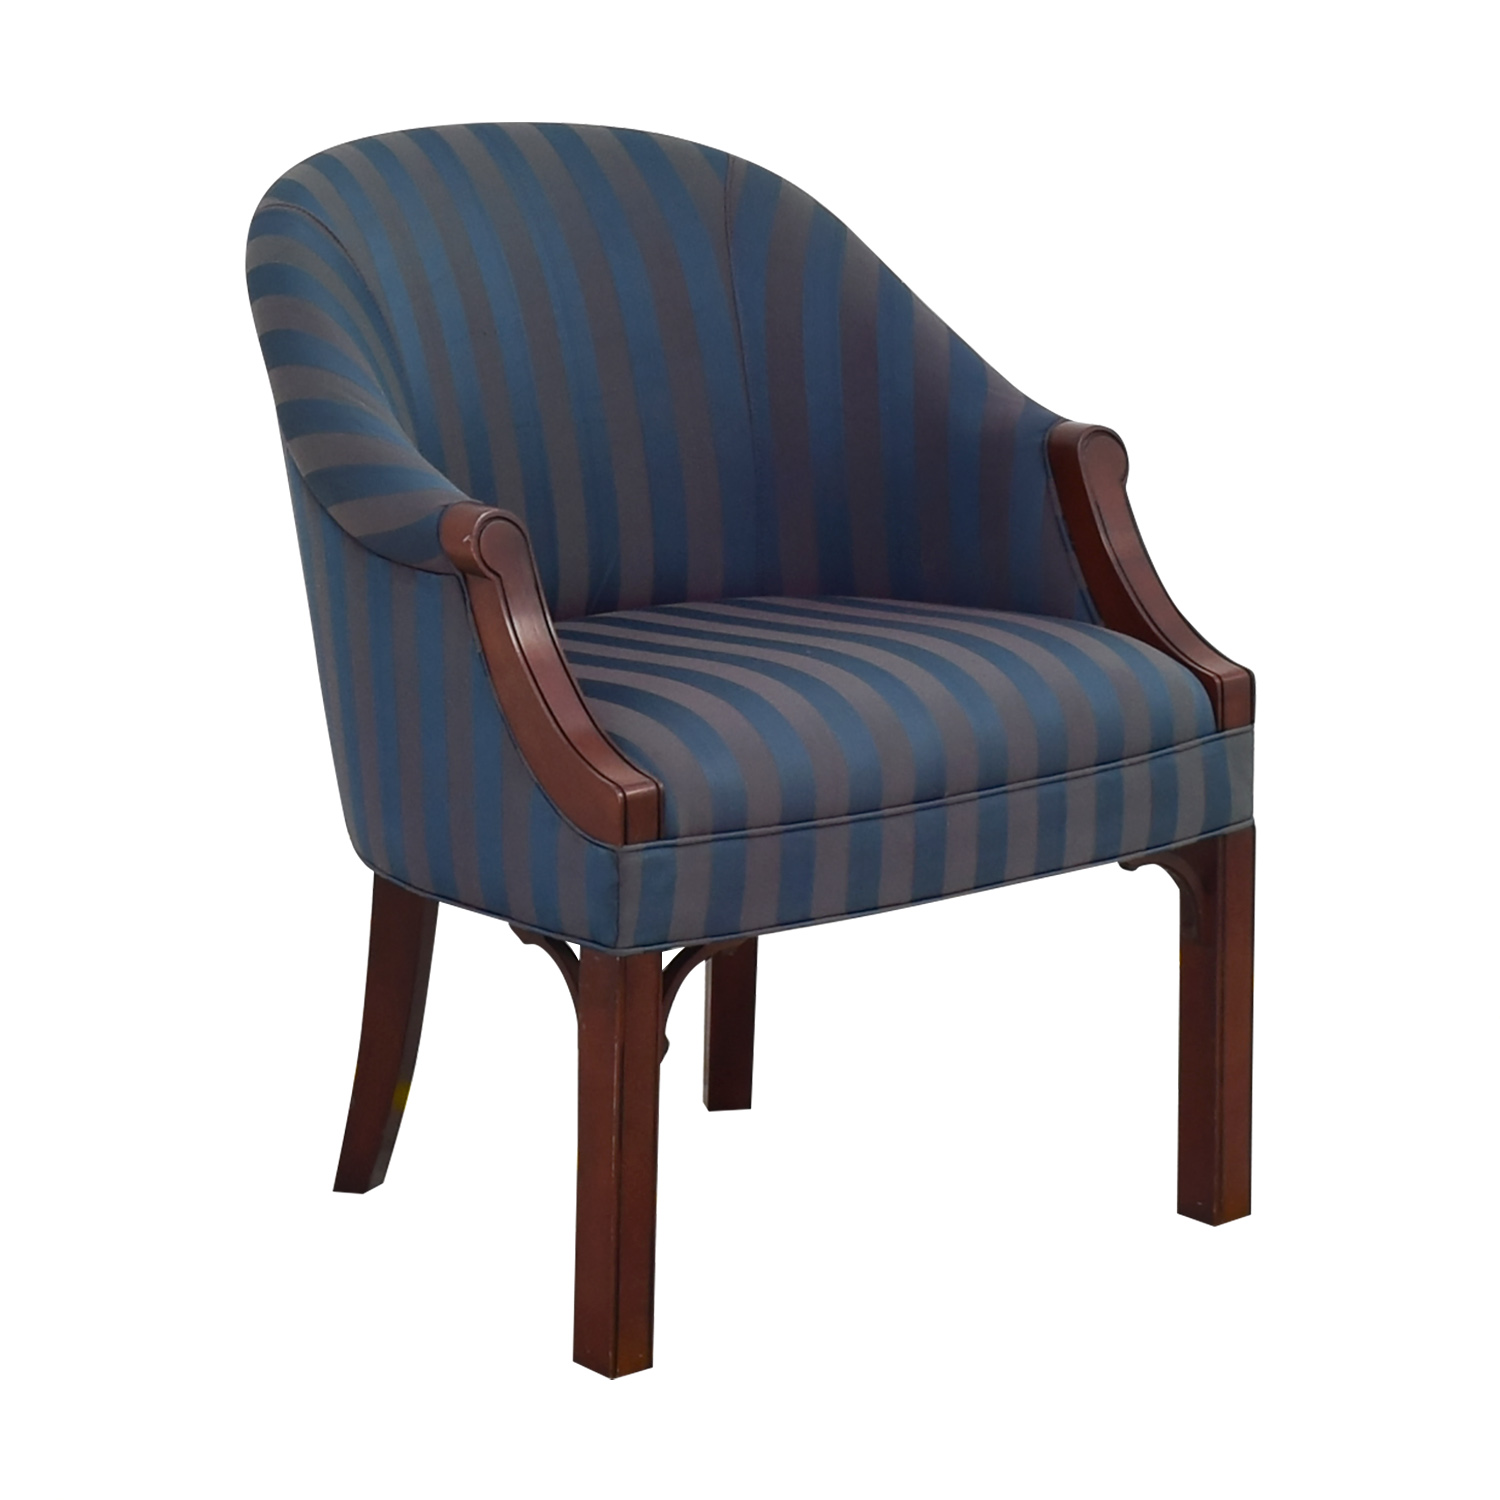 Kimball Kimball Independence Newcastle Chair Chairs